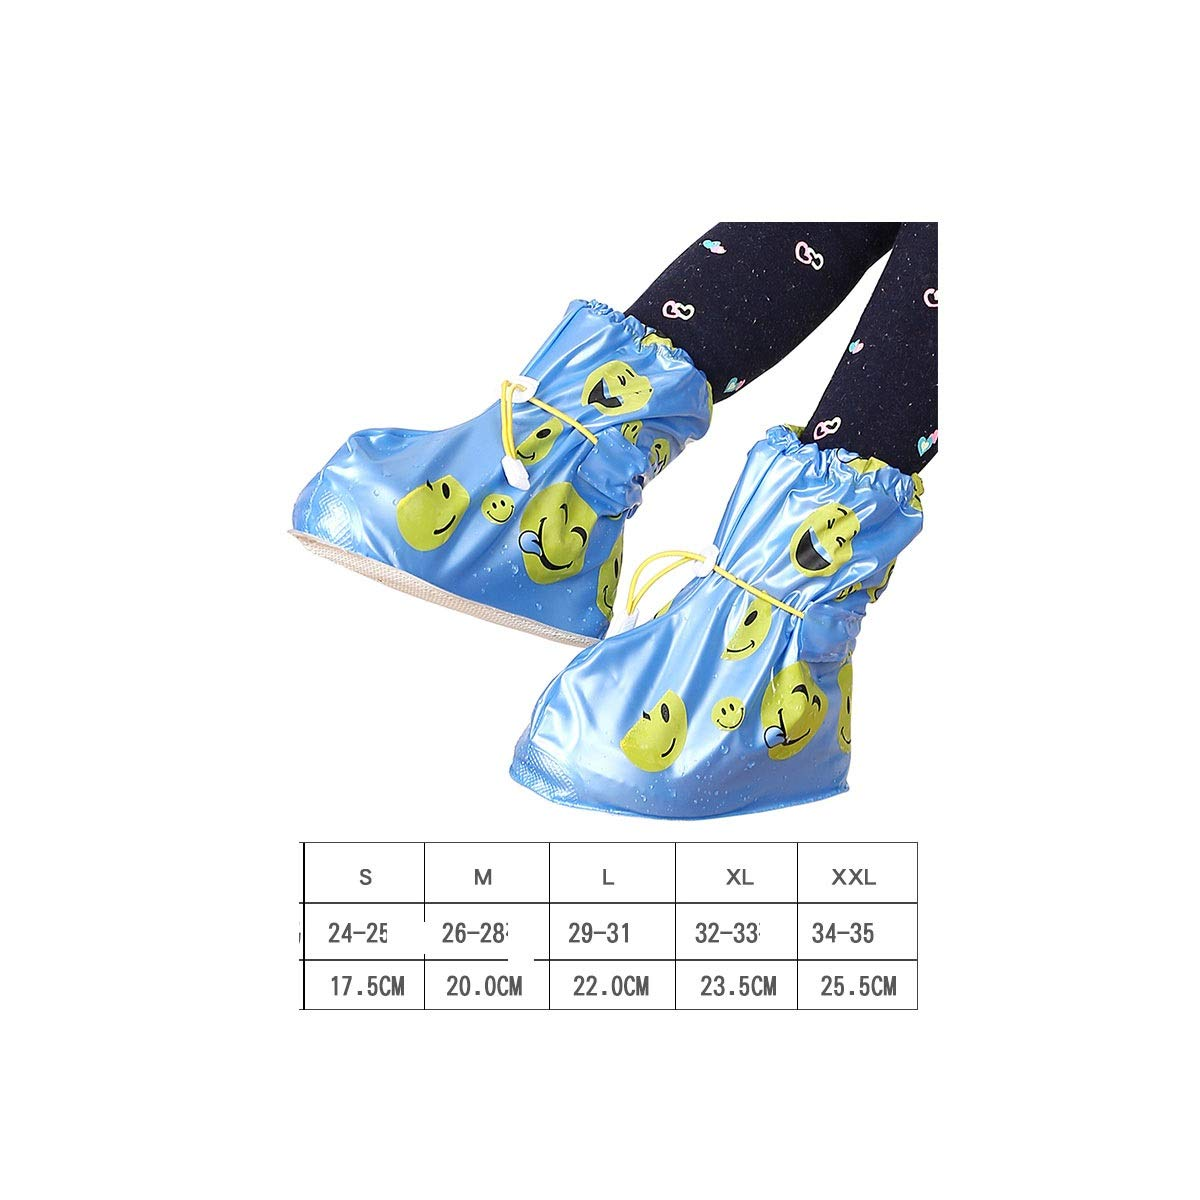 KAIYITONG Waterproof Rain Boots, Waterproof Rainy Days Students Silicone Non-slip Thick Wear-resistant Rain Men And Women Rain Boots Sets, Multiple Colors And Multiple Choices multi-purpose shoe cover